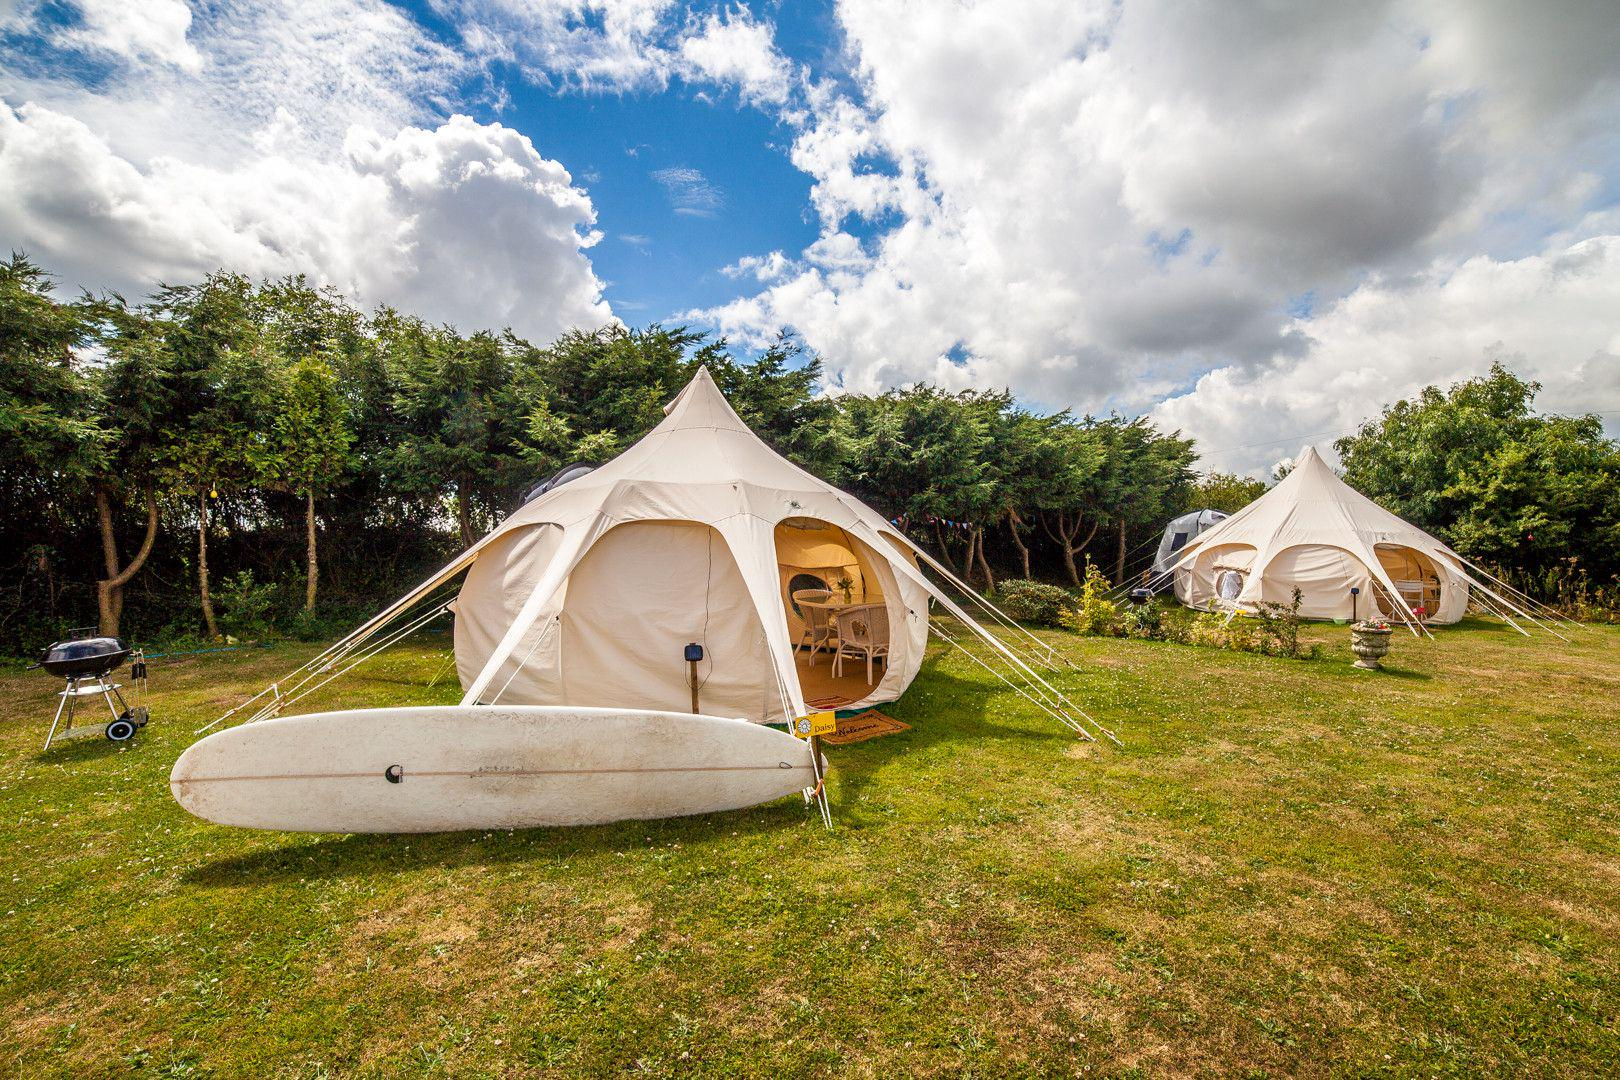 Glamping Accommodation Types - The most popular types of glamping accommodation